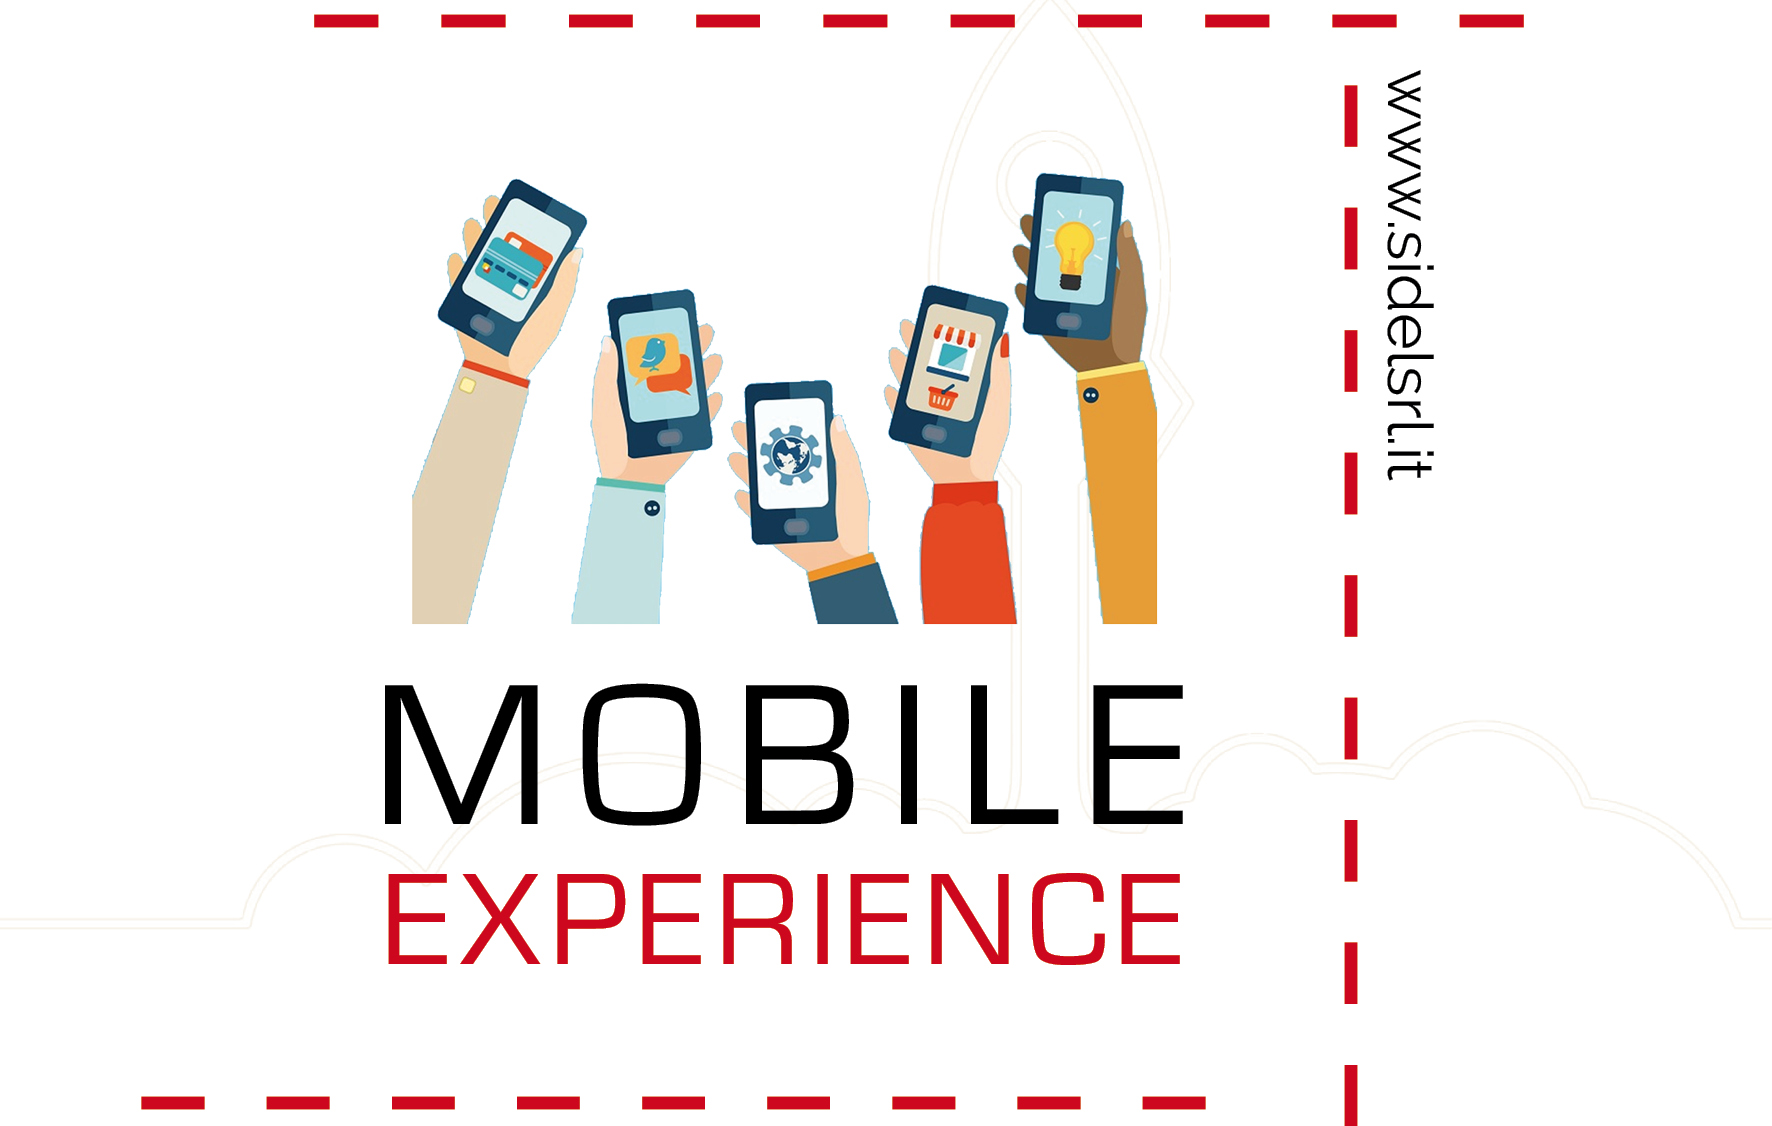 sidle mobile experience